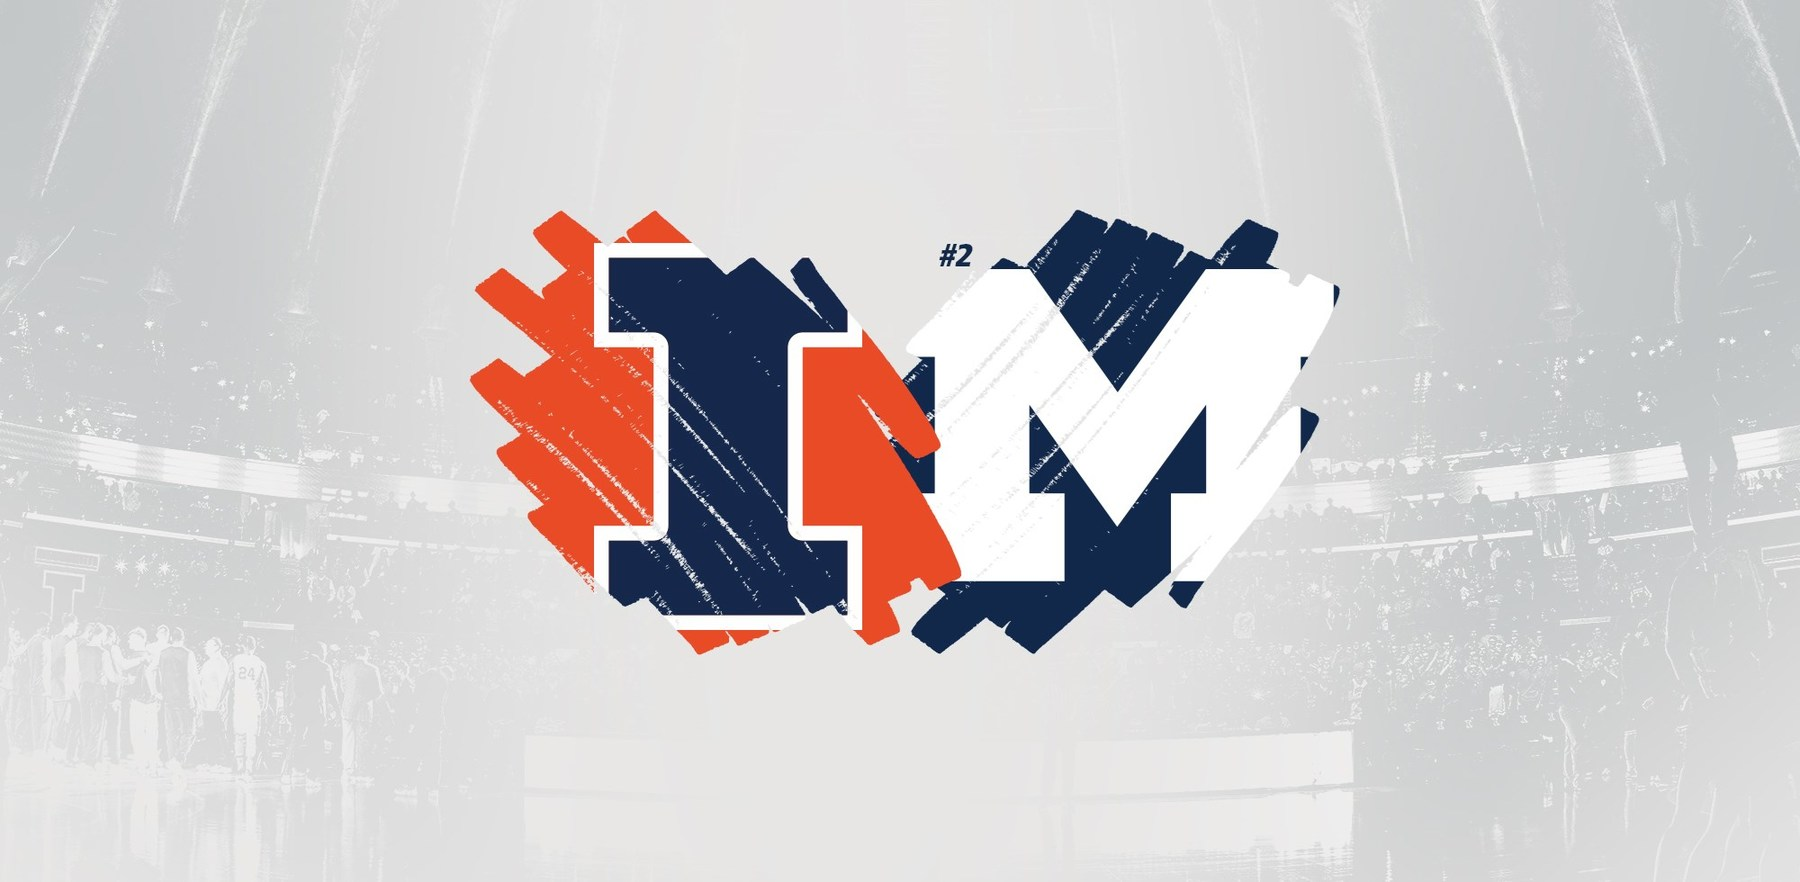 graphic showing Illinois and Michigan sports logos